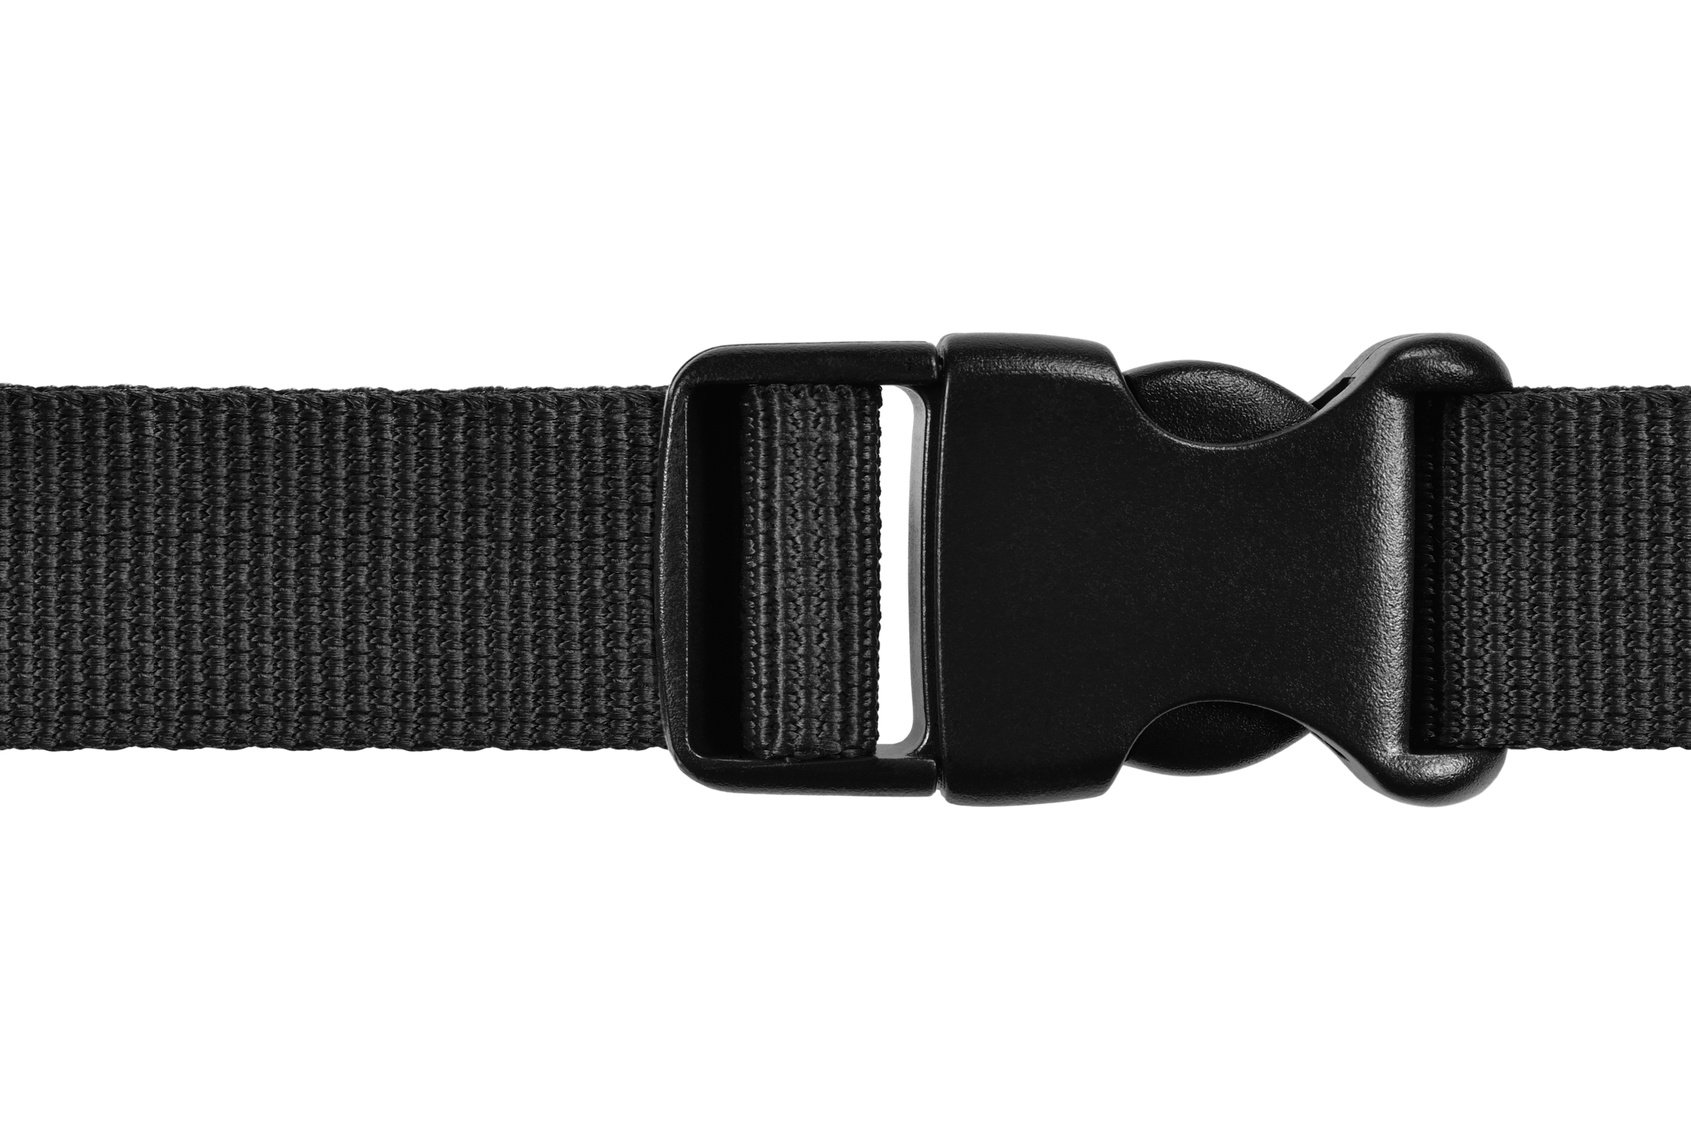 Black woven nylon cosplay strap with plastic parachute clips